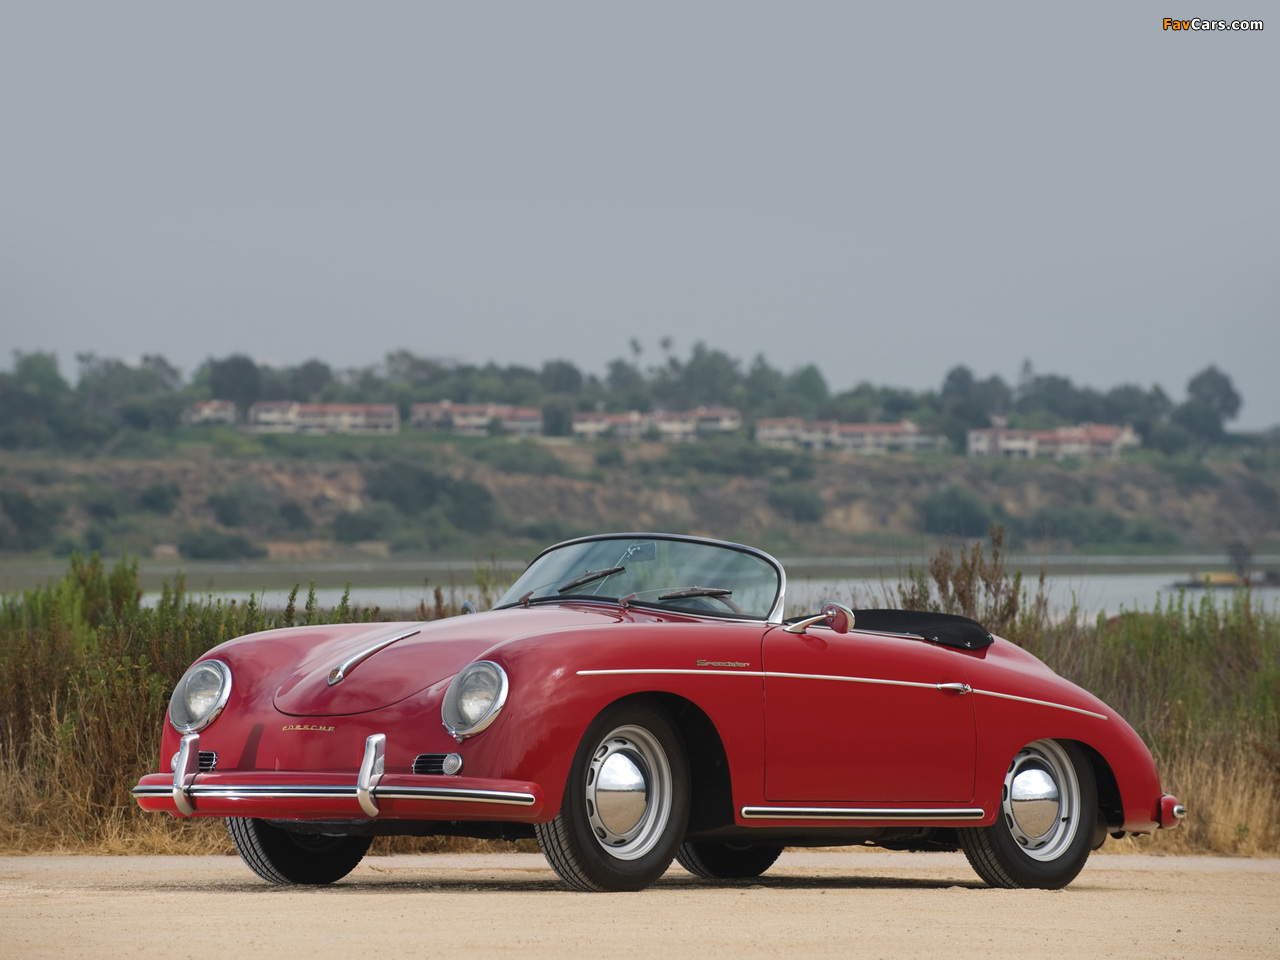 Porsche 356a 1600 Speedster 1956 58 Wallpapers 1280x960